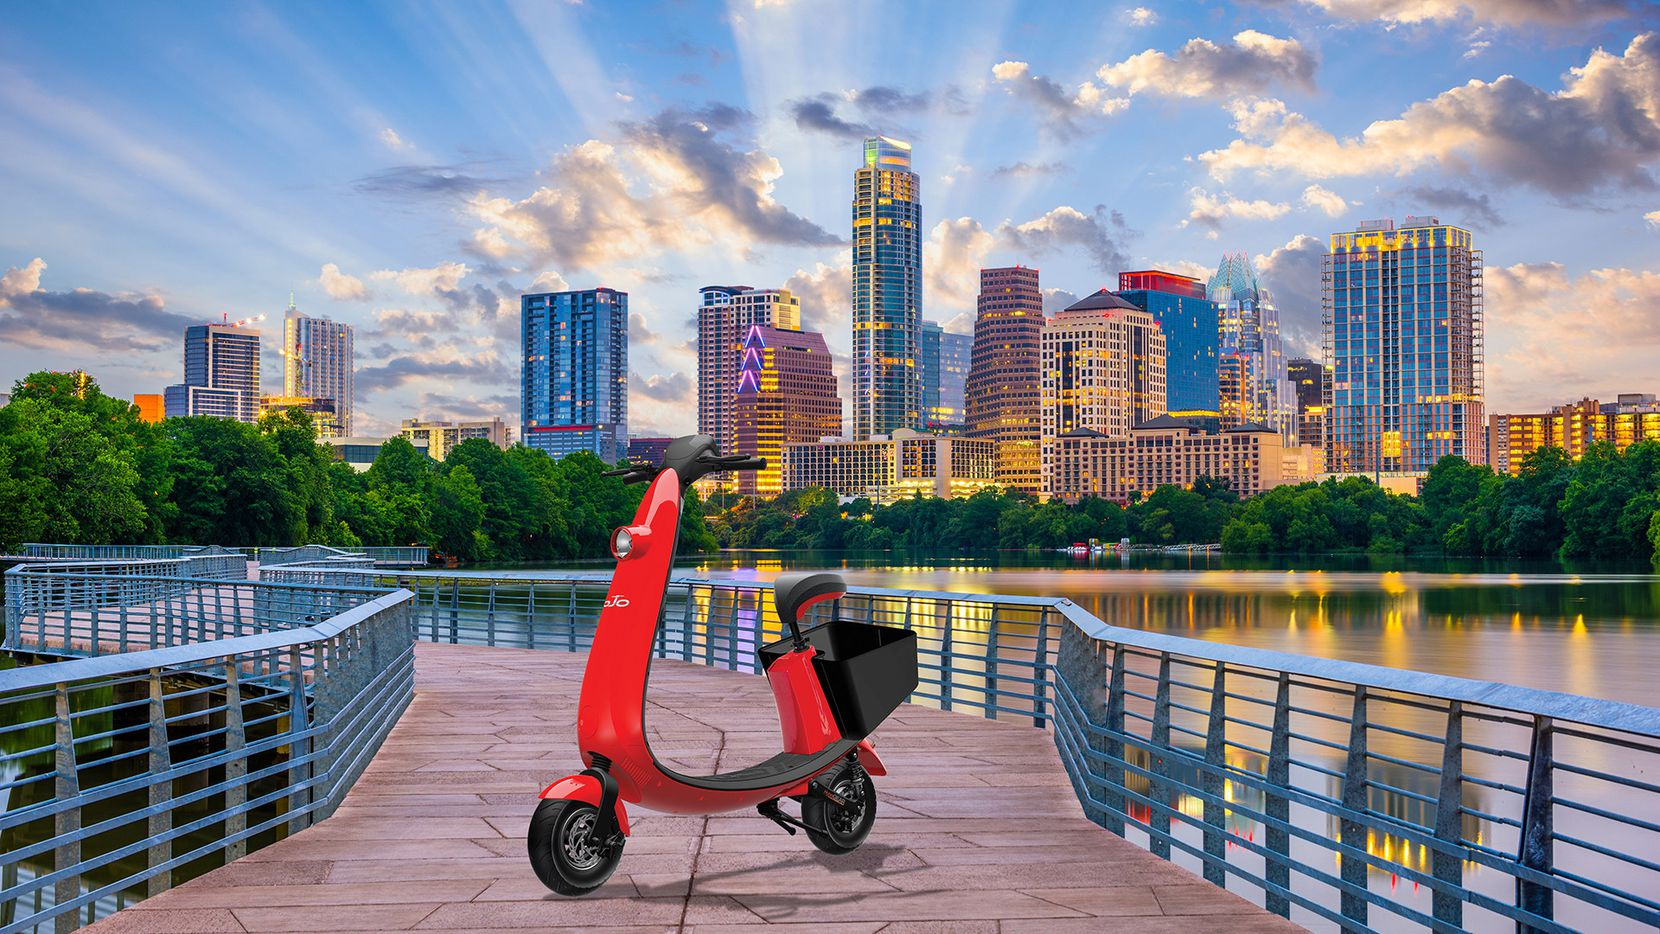 OjO Electric launches new scooter rideshare service in Austin, Texas